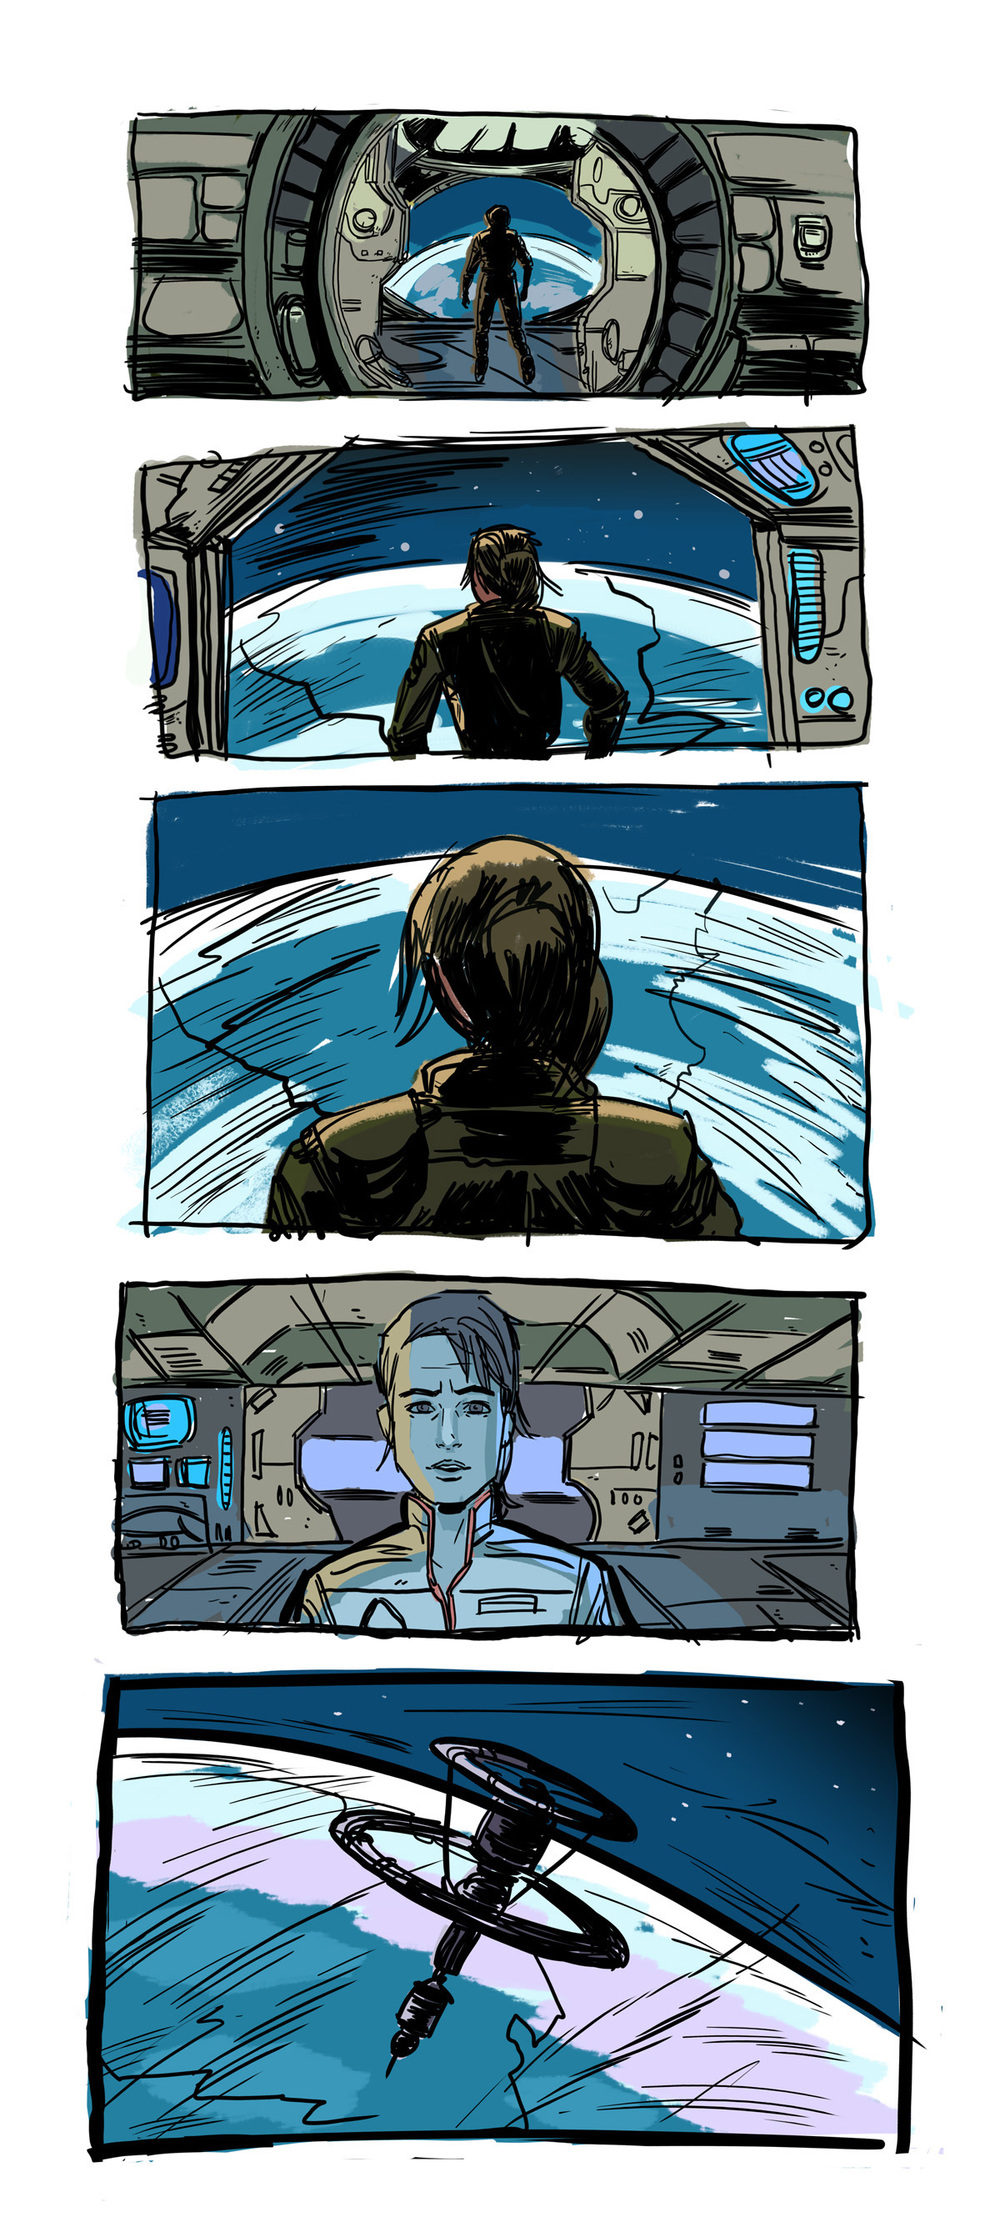 More rough layouts of the same scene, with an approximation of the tone and palette.